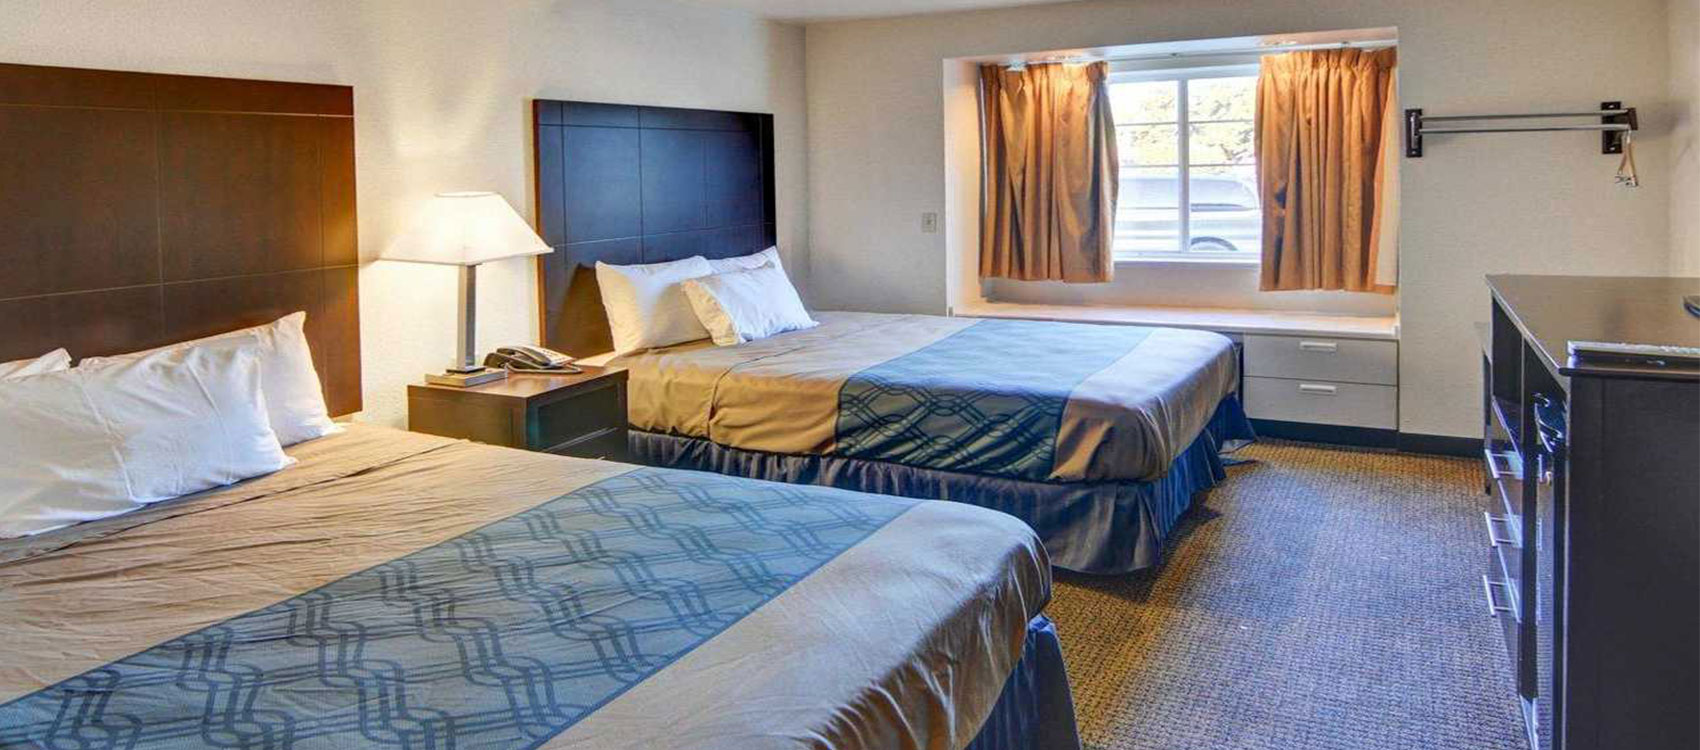 Hotel in Lewisville, TX Double Bed Room